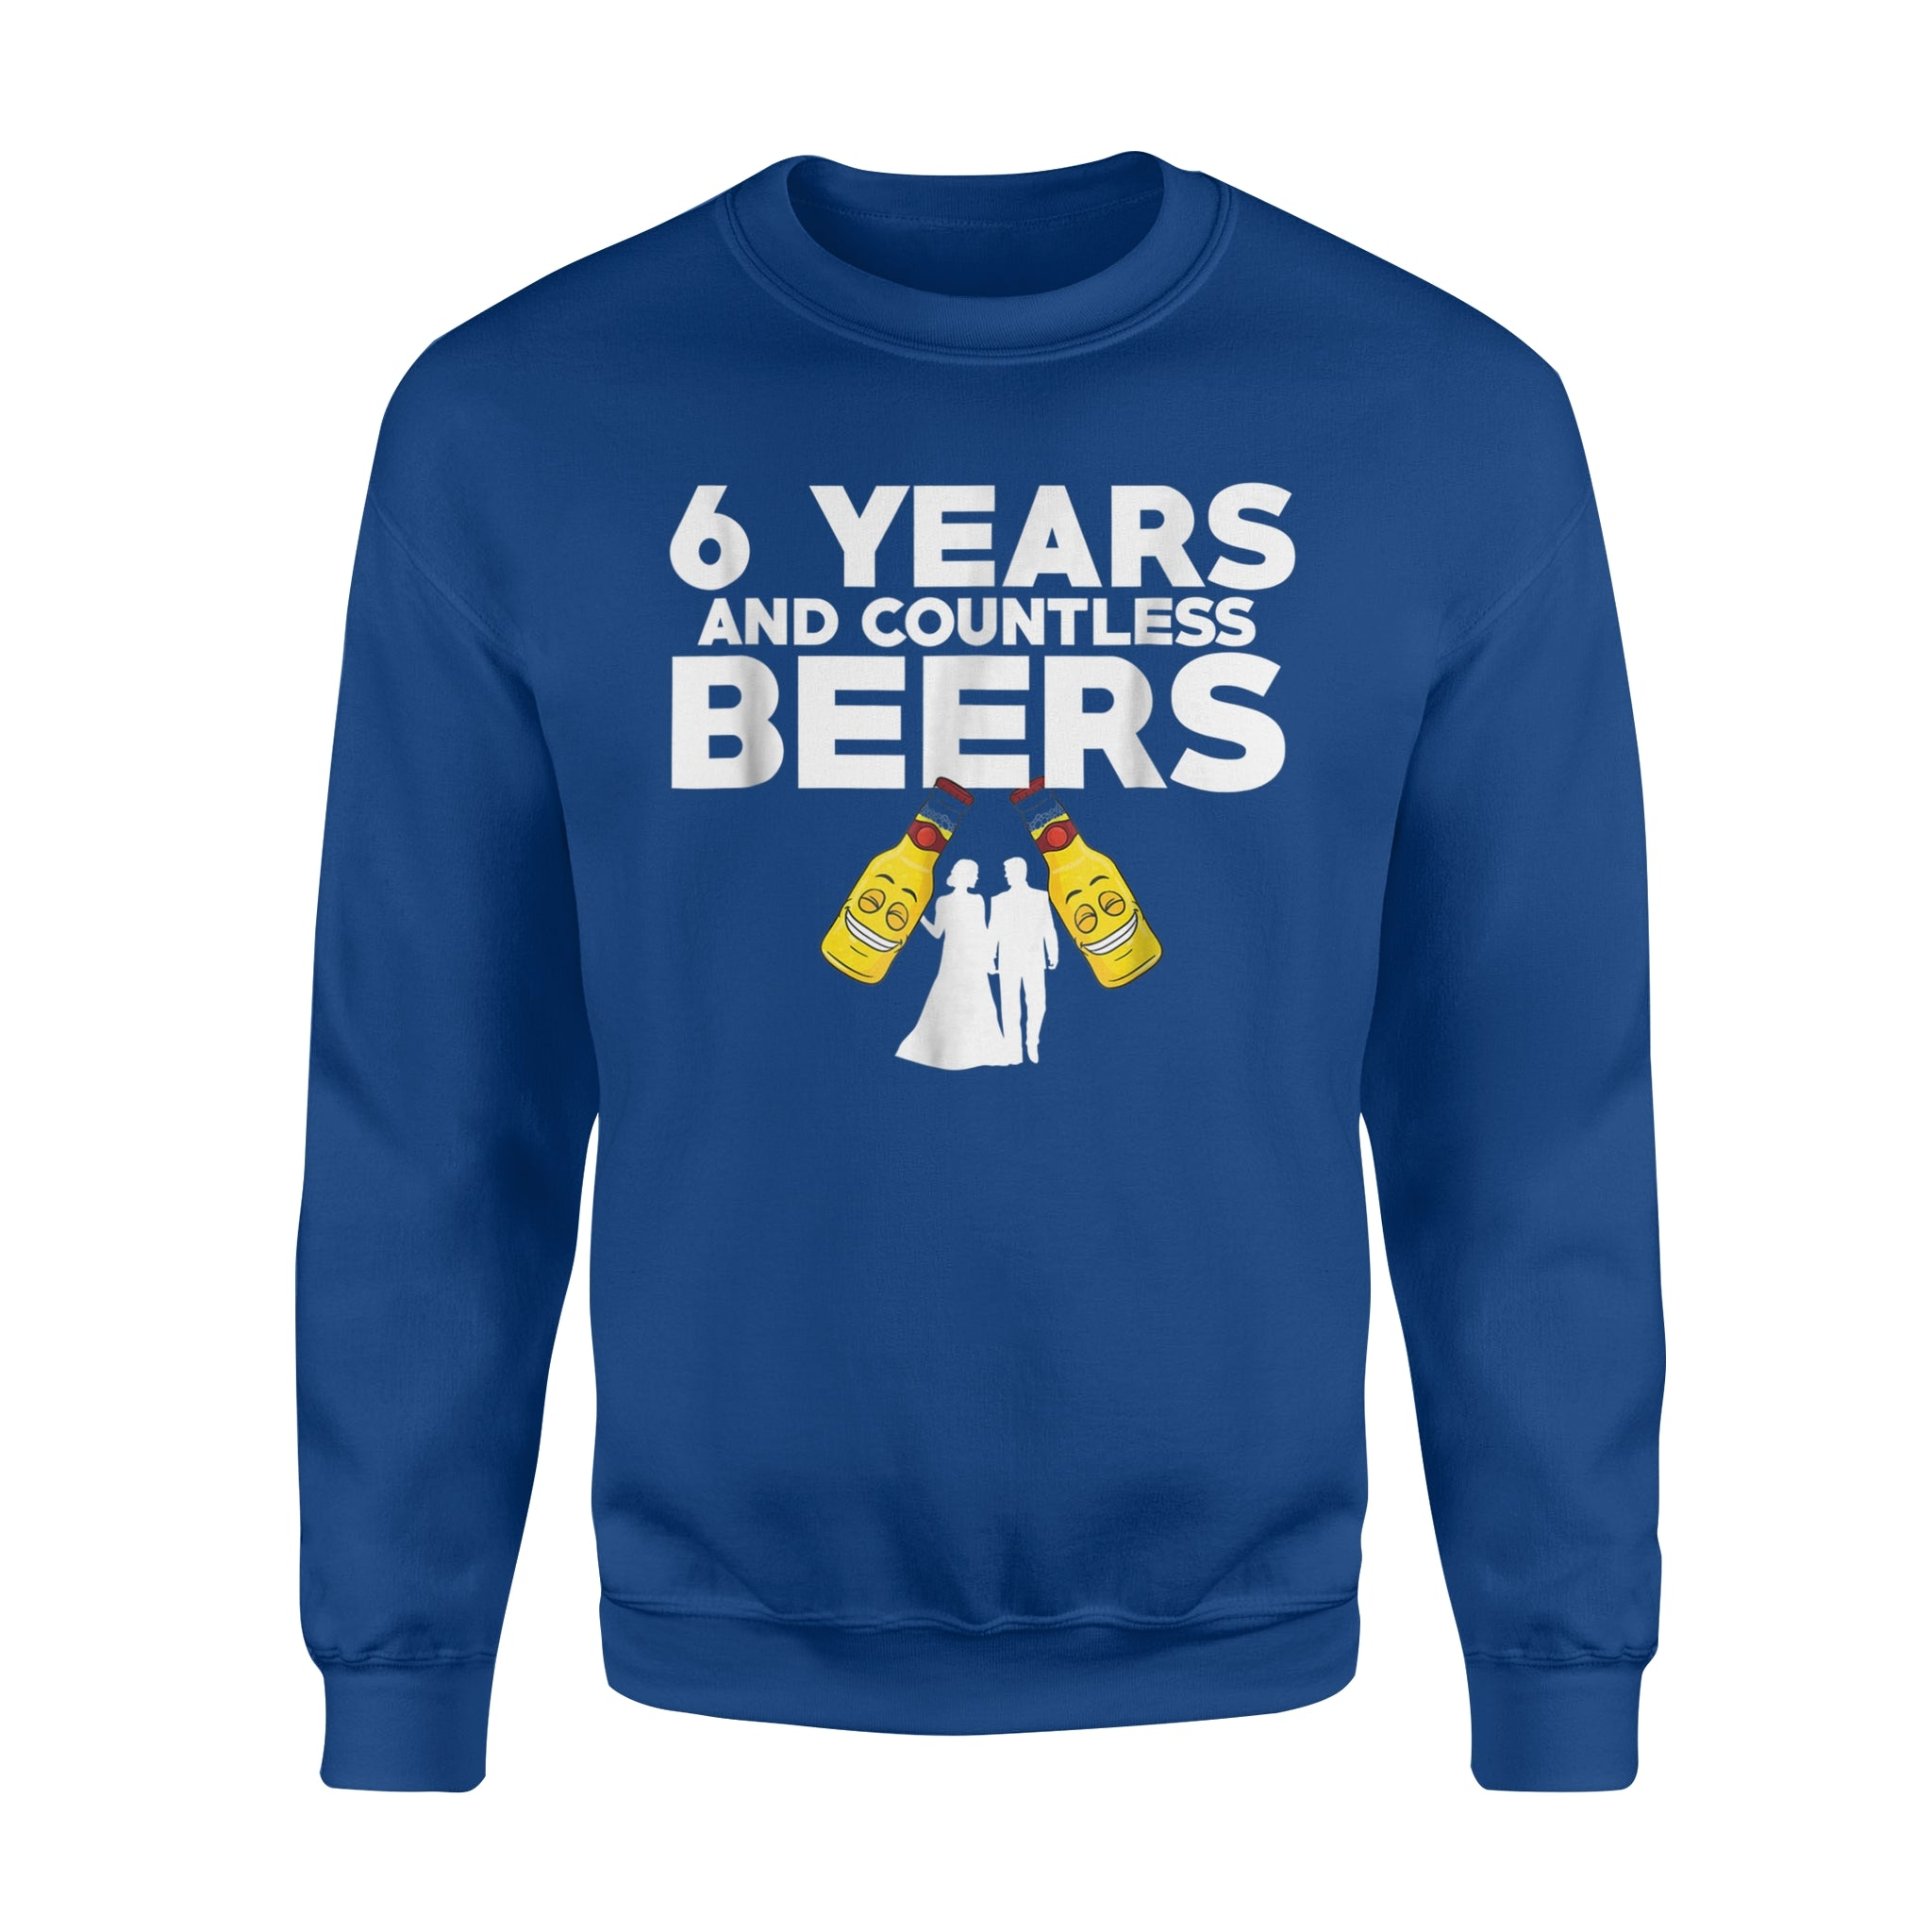 6th Wedding Anniversary Gift Ideas For Husband: 6th Wedding Anniversary Funny Husband Love Gift Sweatshirt